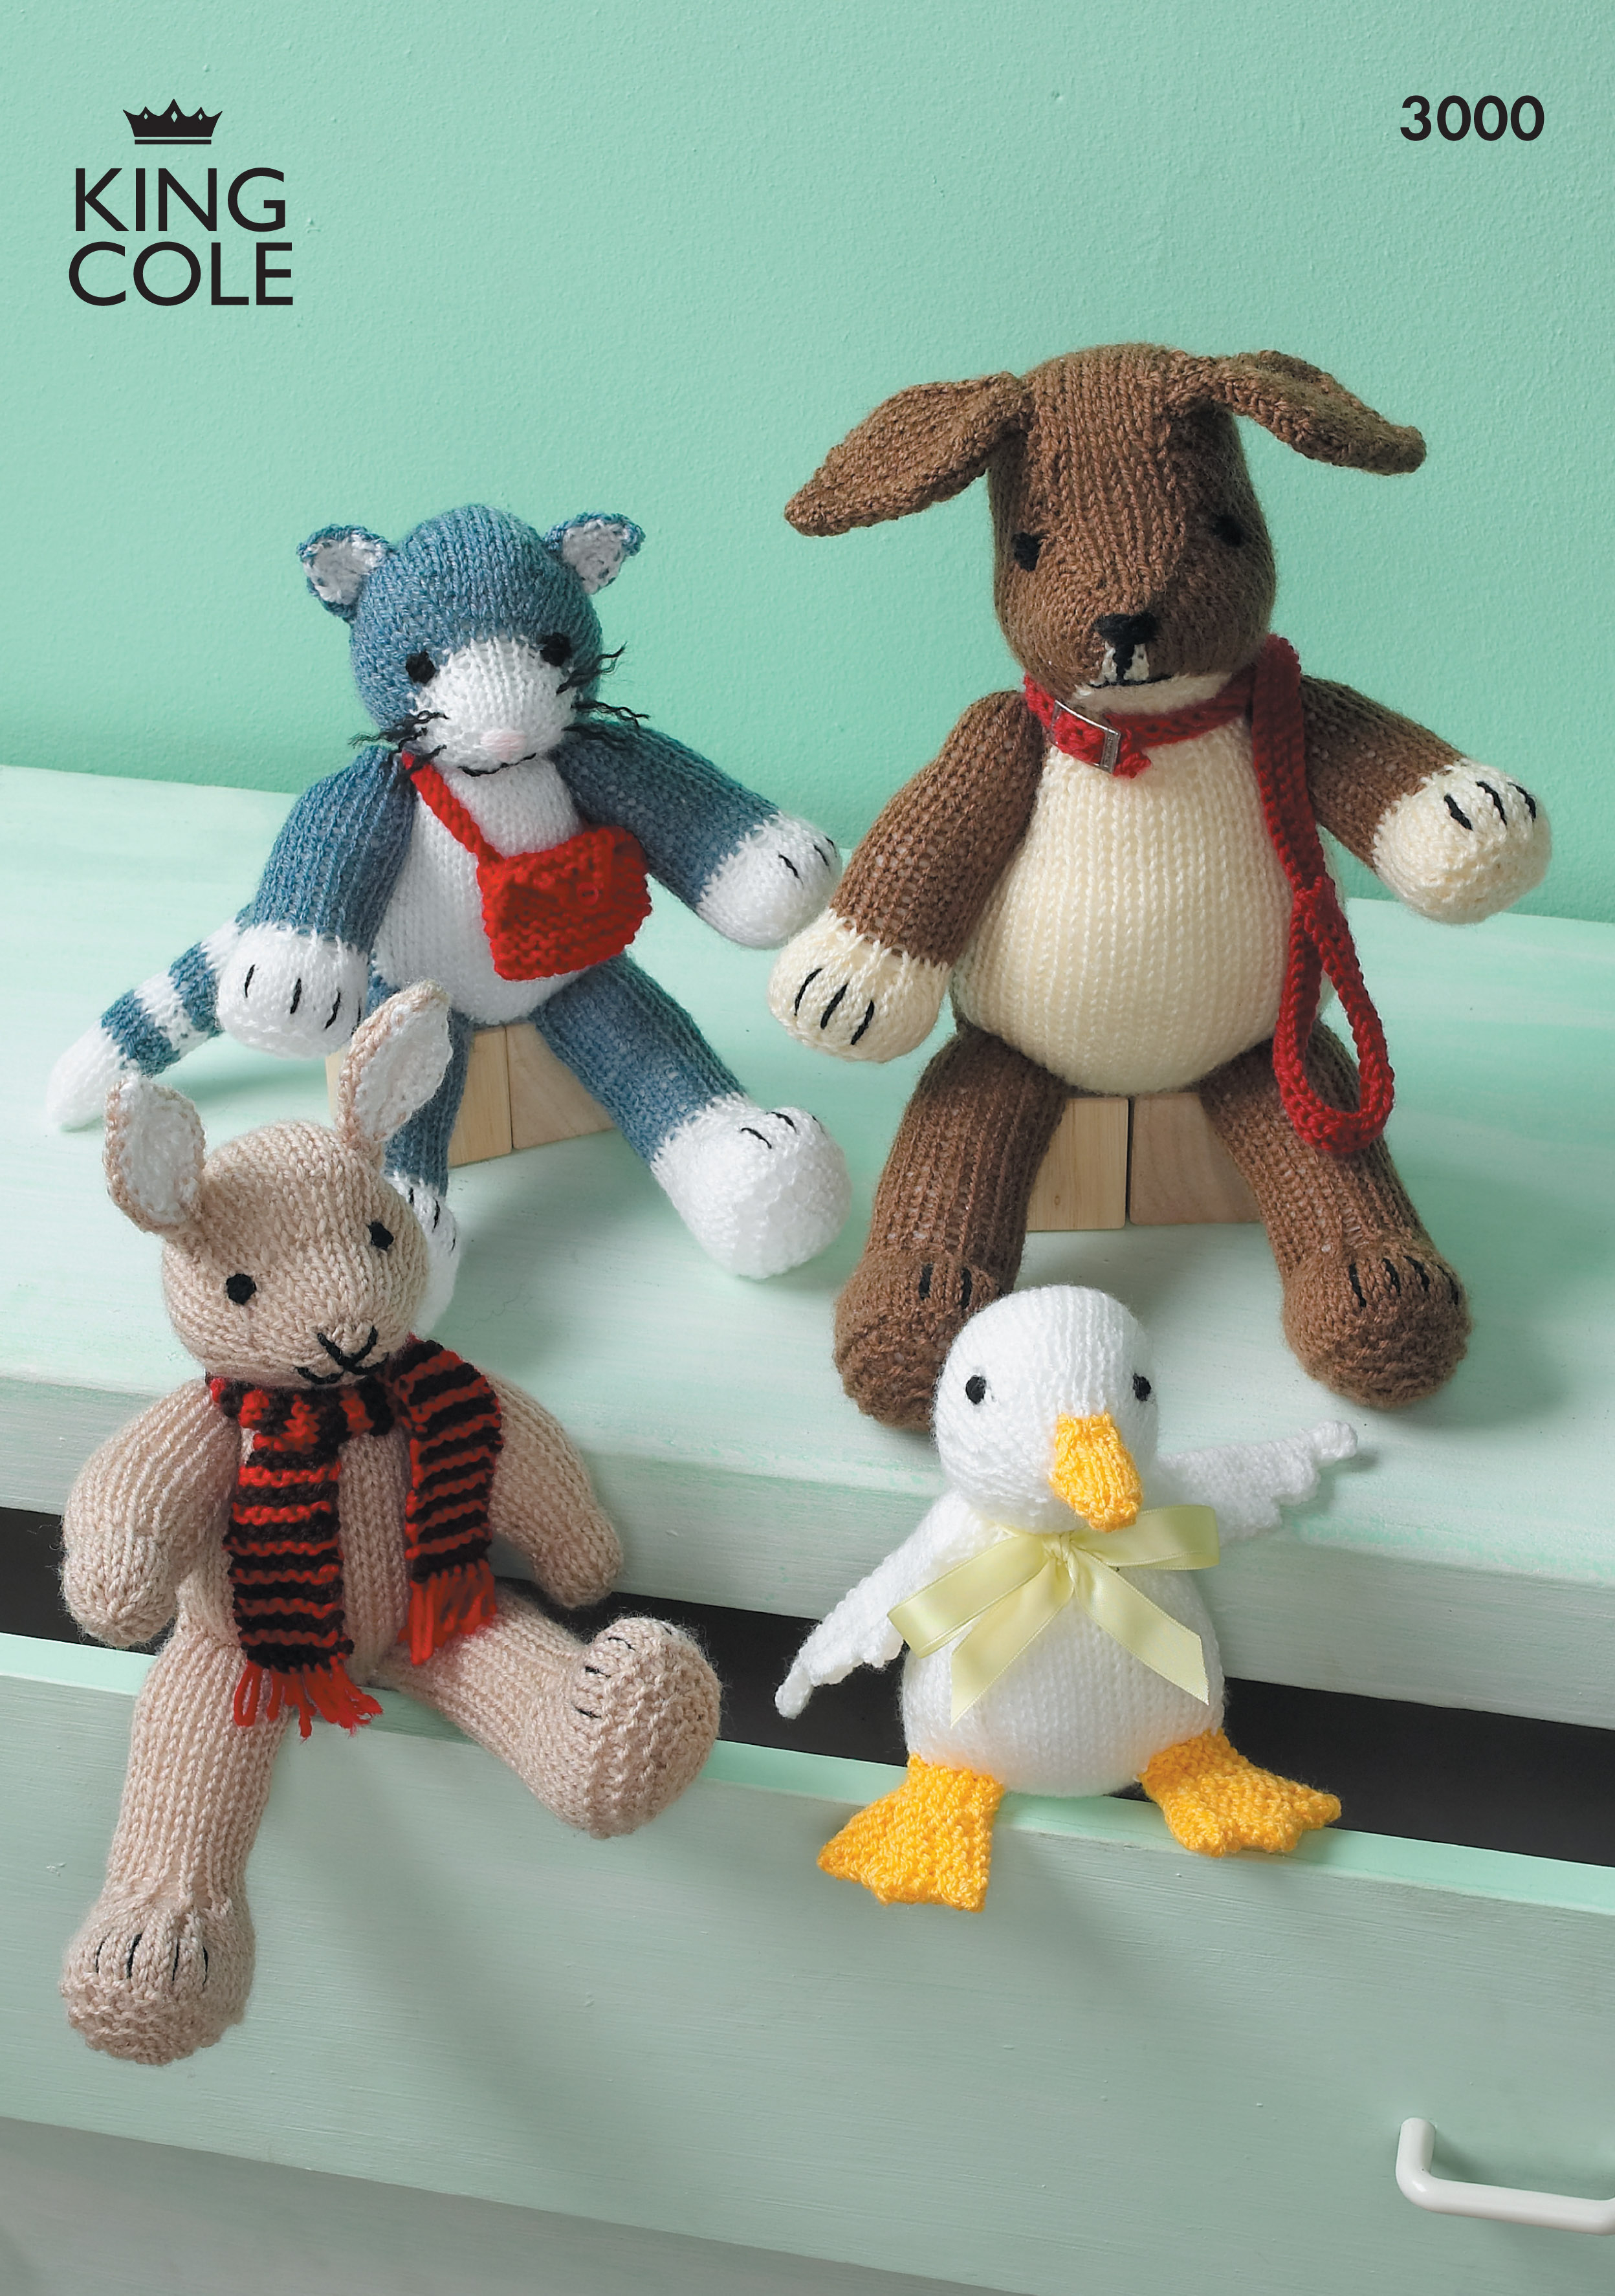 Knitting Patterns For Toys Uk Easy To Follow Toys Knitted In Various King Cole Dk Knitting